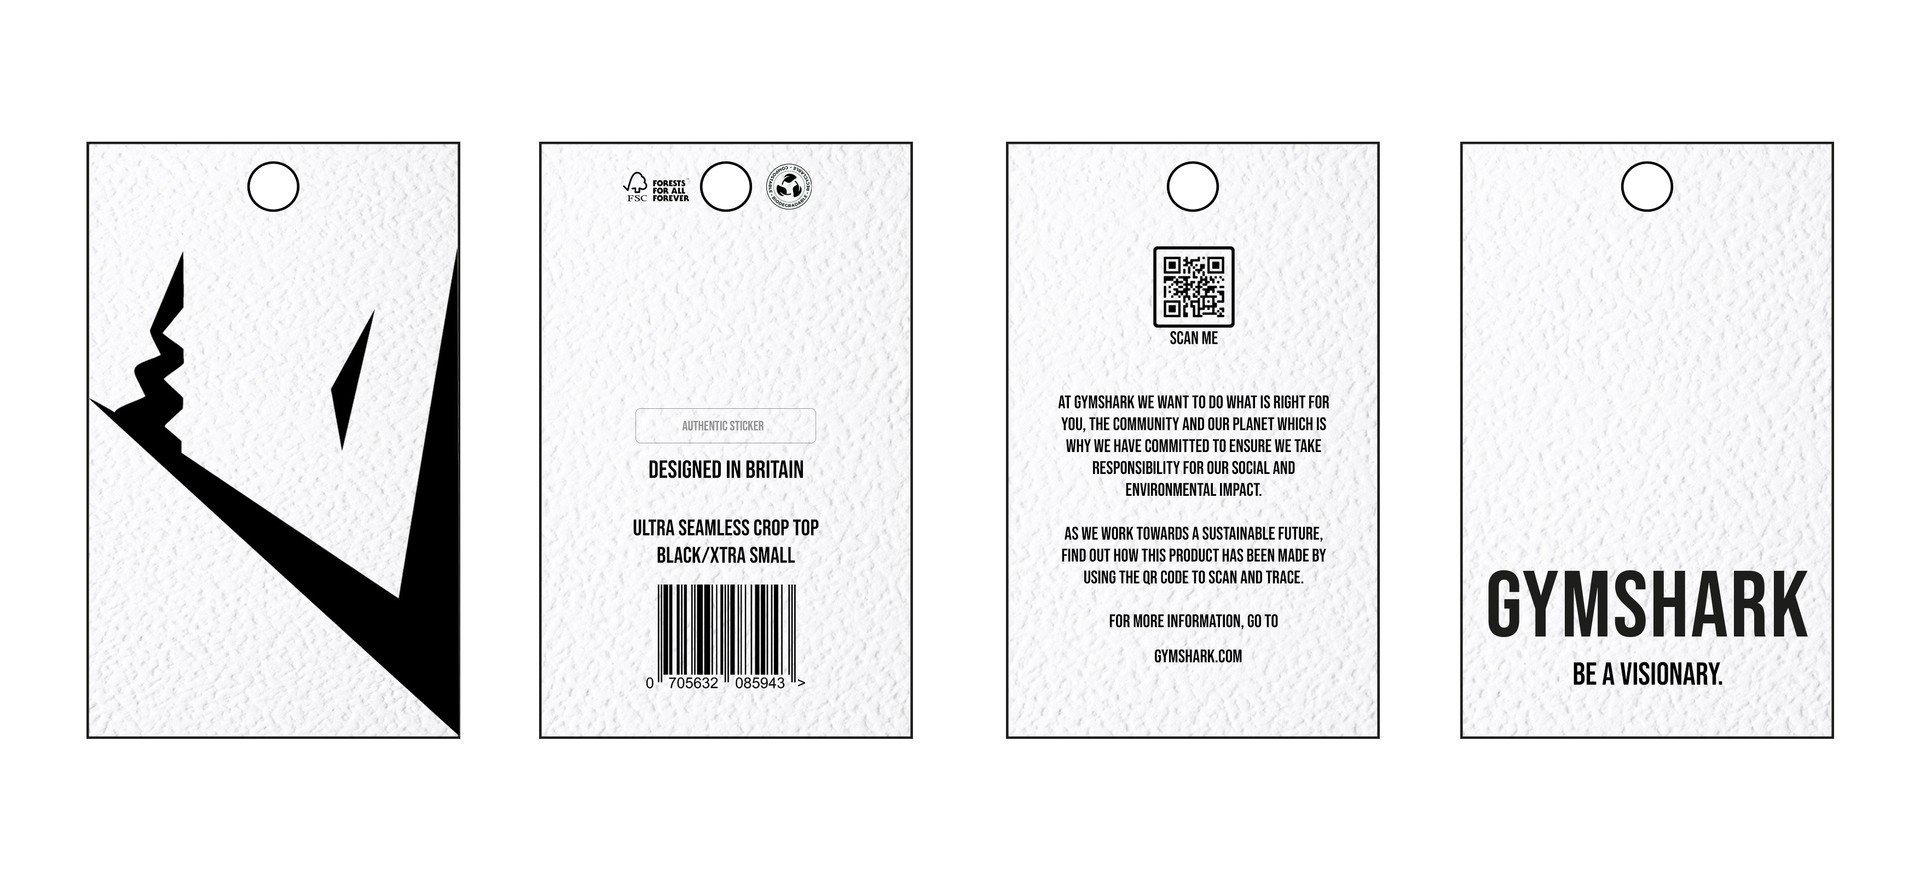 Swing Ticket. Utilising QR code technology to trace and track a products information down to its raw material.